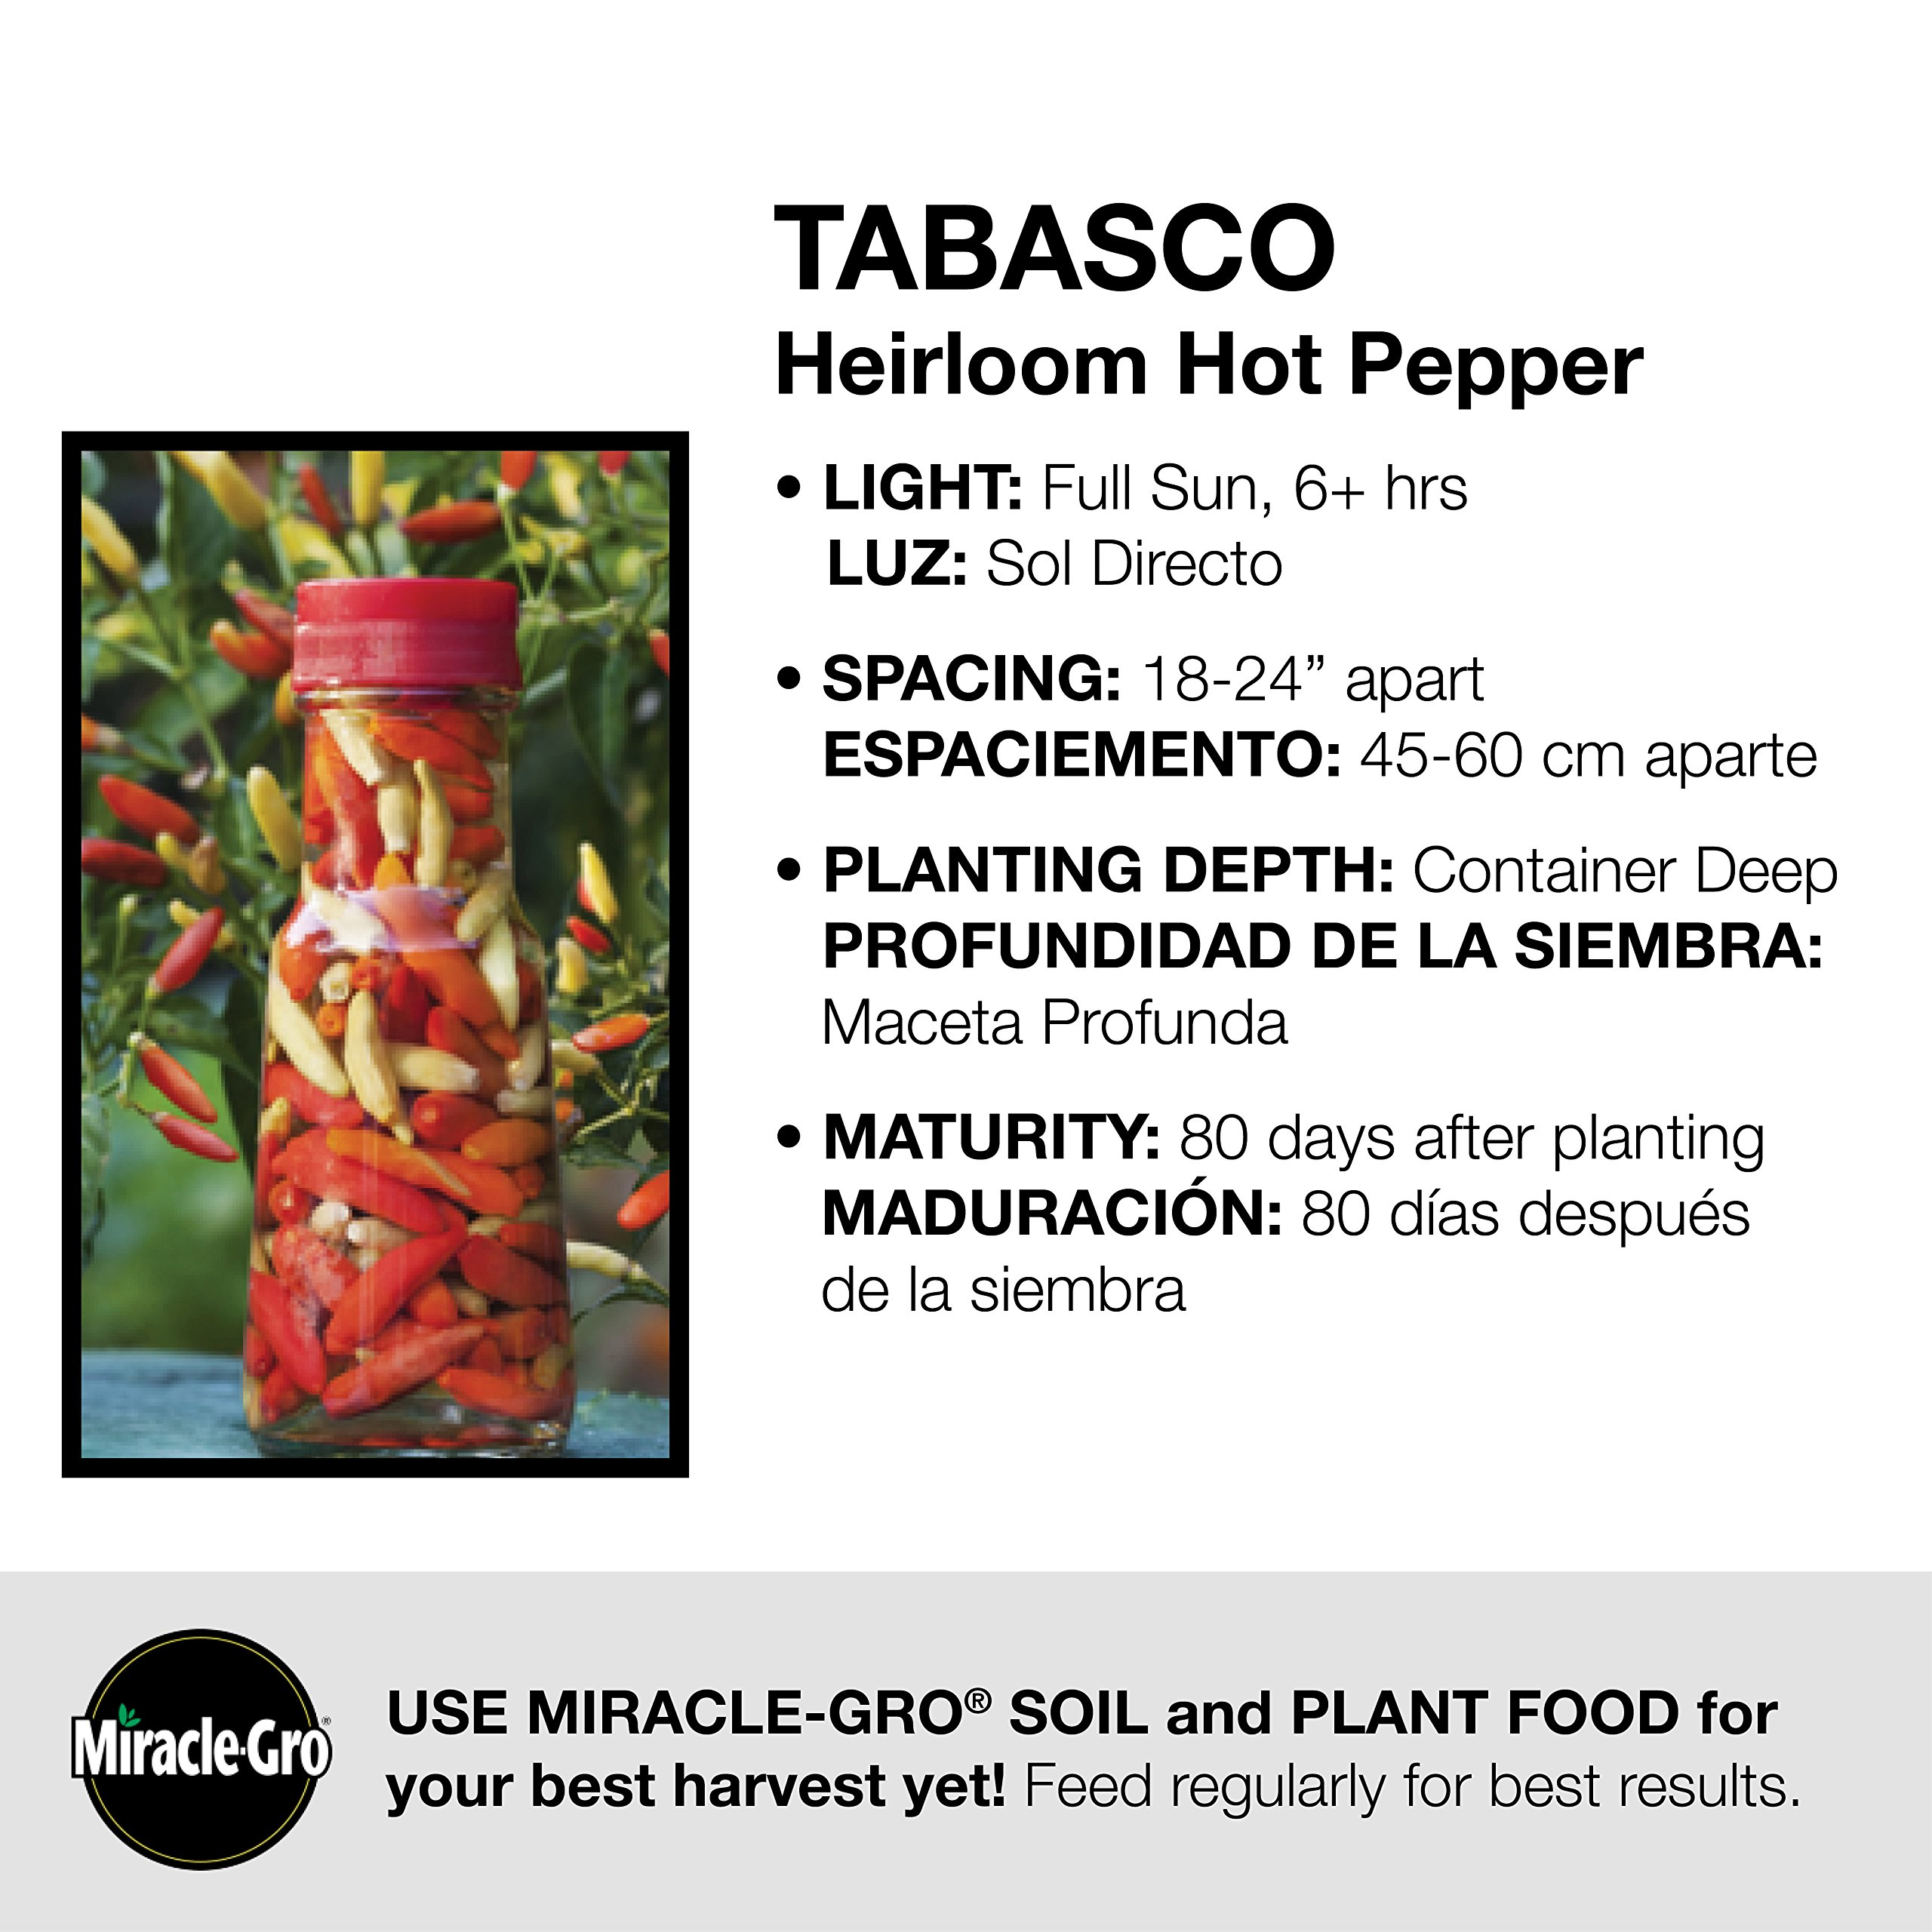 Bonnie Plants Tabasco Pepper - 4 Pack Live Plants, 1.5 - 2 Inch Fruits, 24 - 36 Inch Tall Plants, Great For Pickling & Preserving by Bonnie Plants (Image #4)